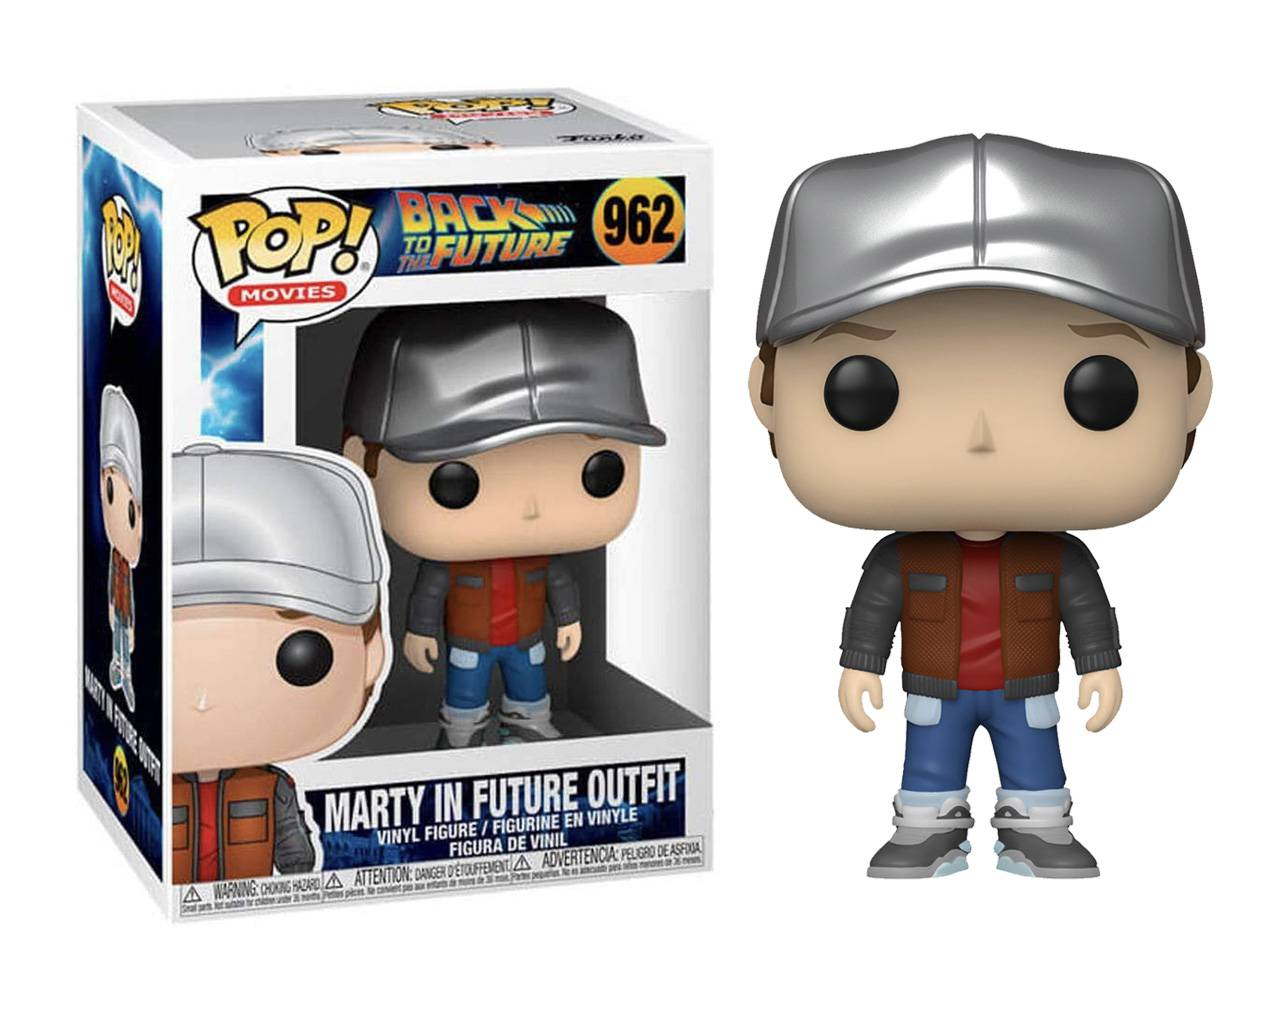 Marty McFly in Future Outfit Pop! Vinyl